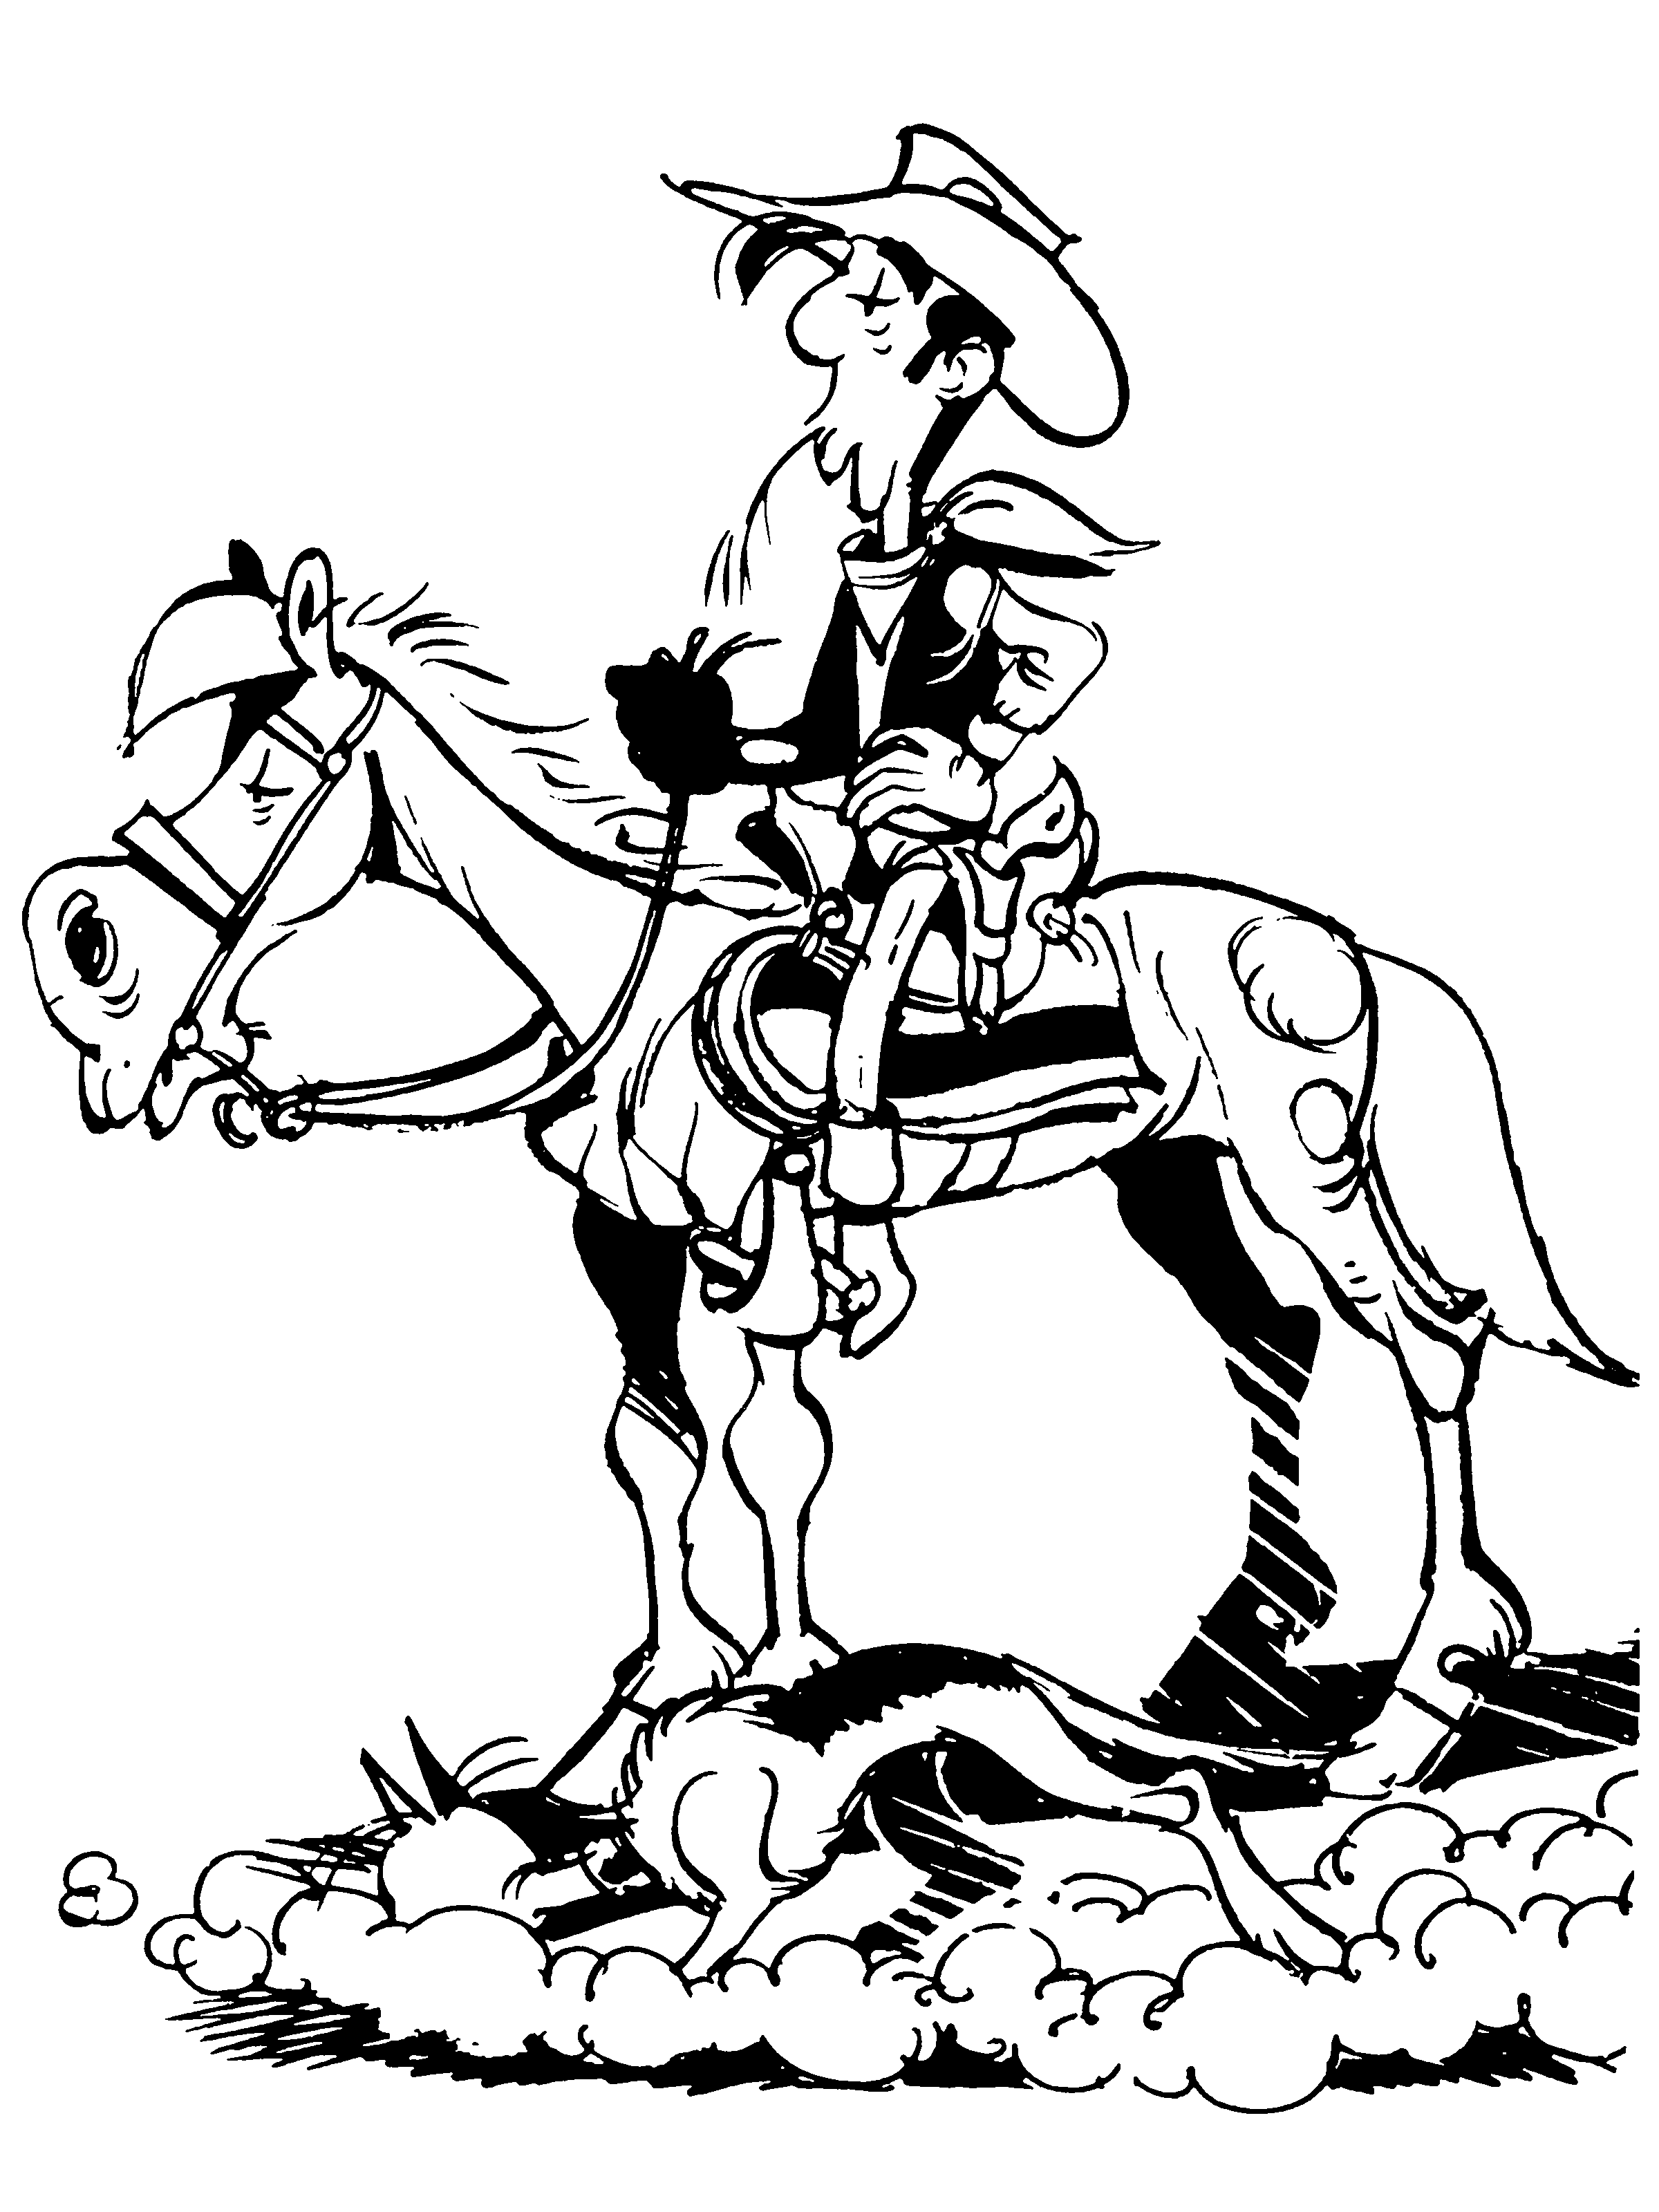 Coloriages imprimer lucky luke num ro 673111 - Coloriage bande dessinee ...